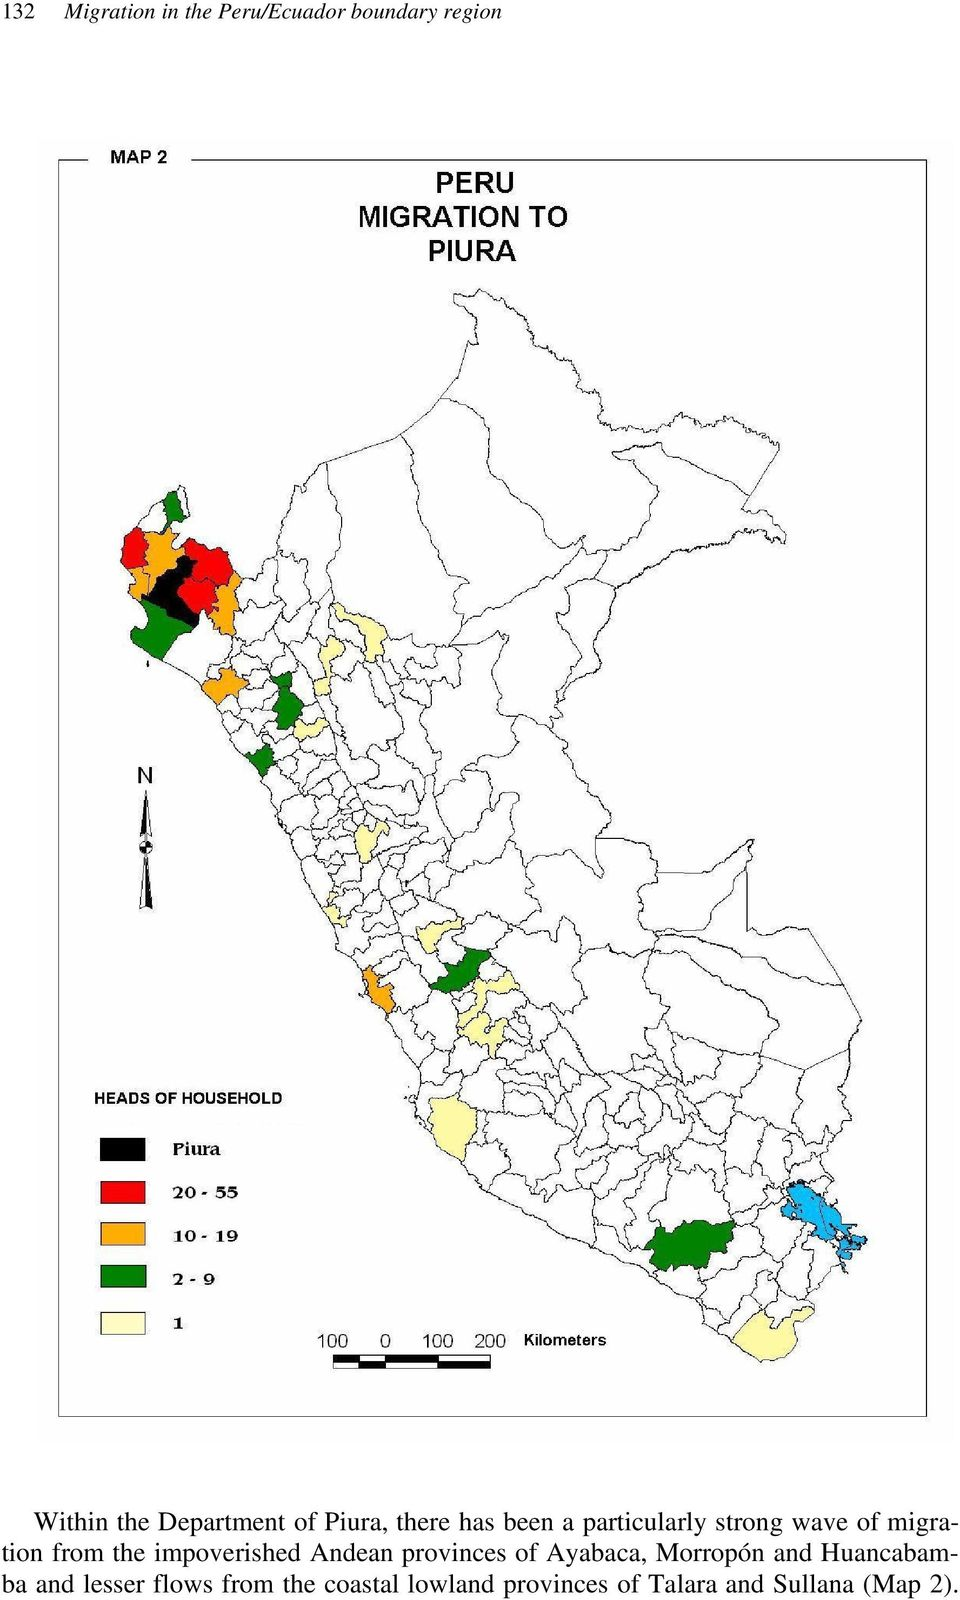 impoverished Andean provinces of Ayabaca, Morropón and Huancabamba and